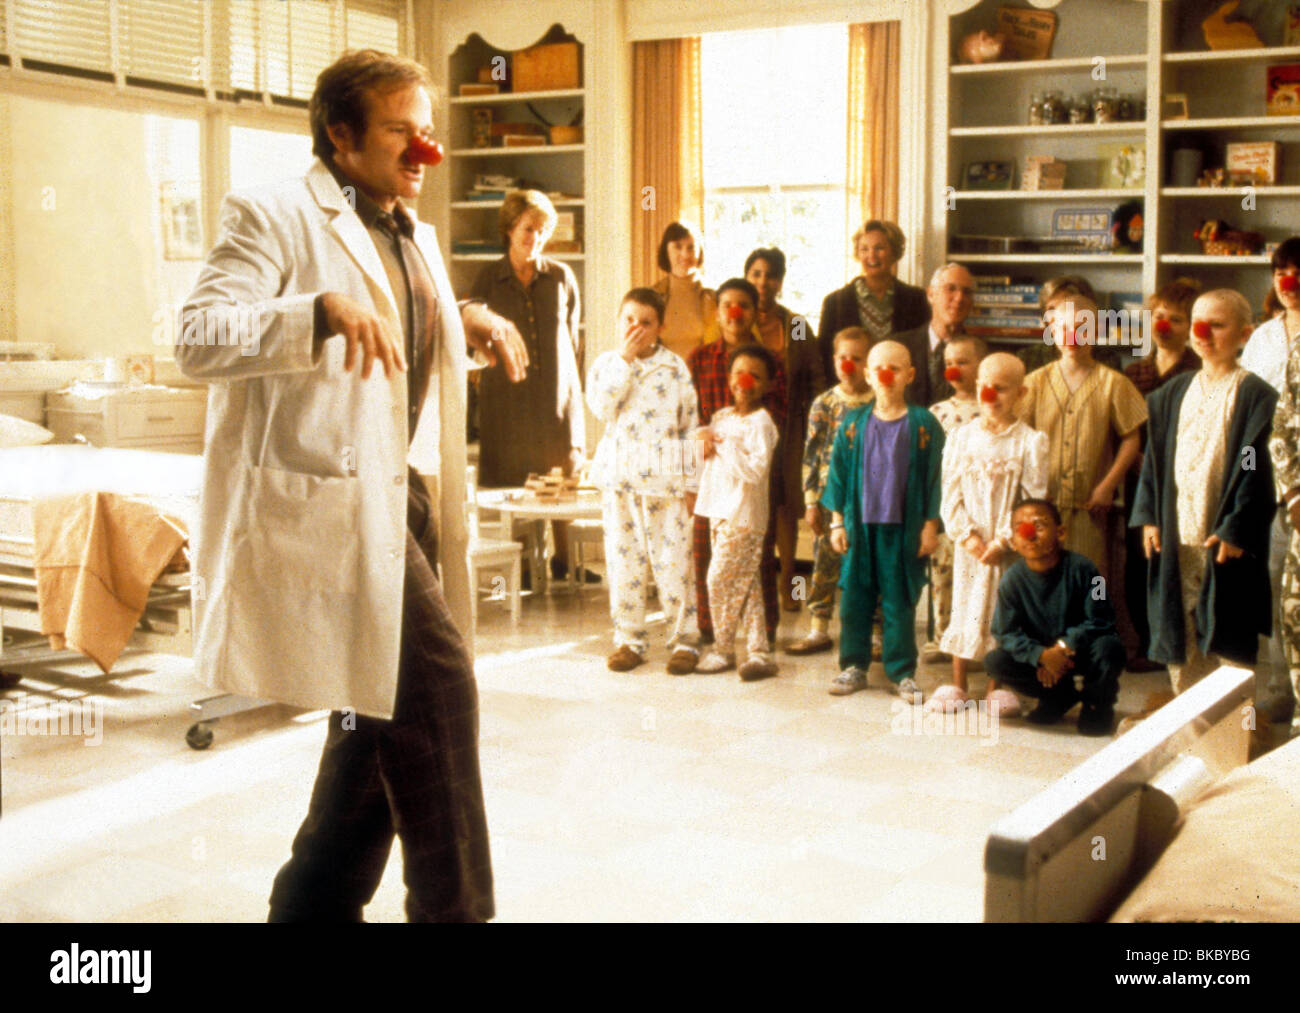 Patch Adams High Resolution Stock Photography And Images Alamy